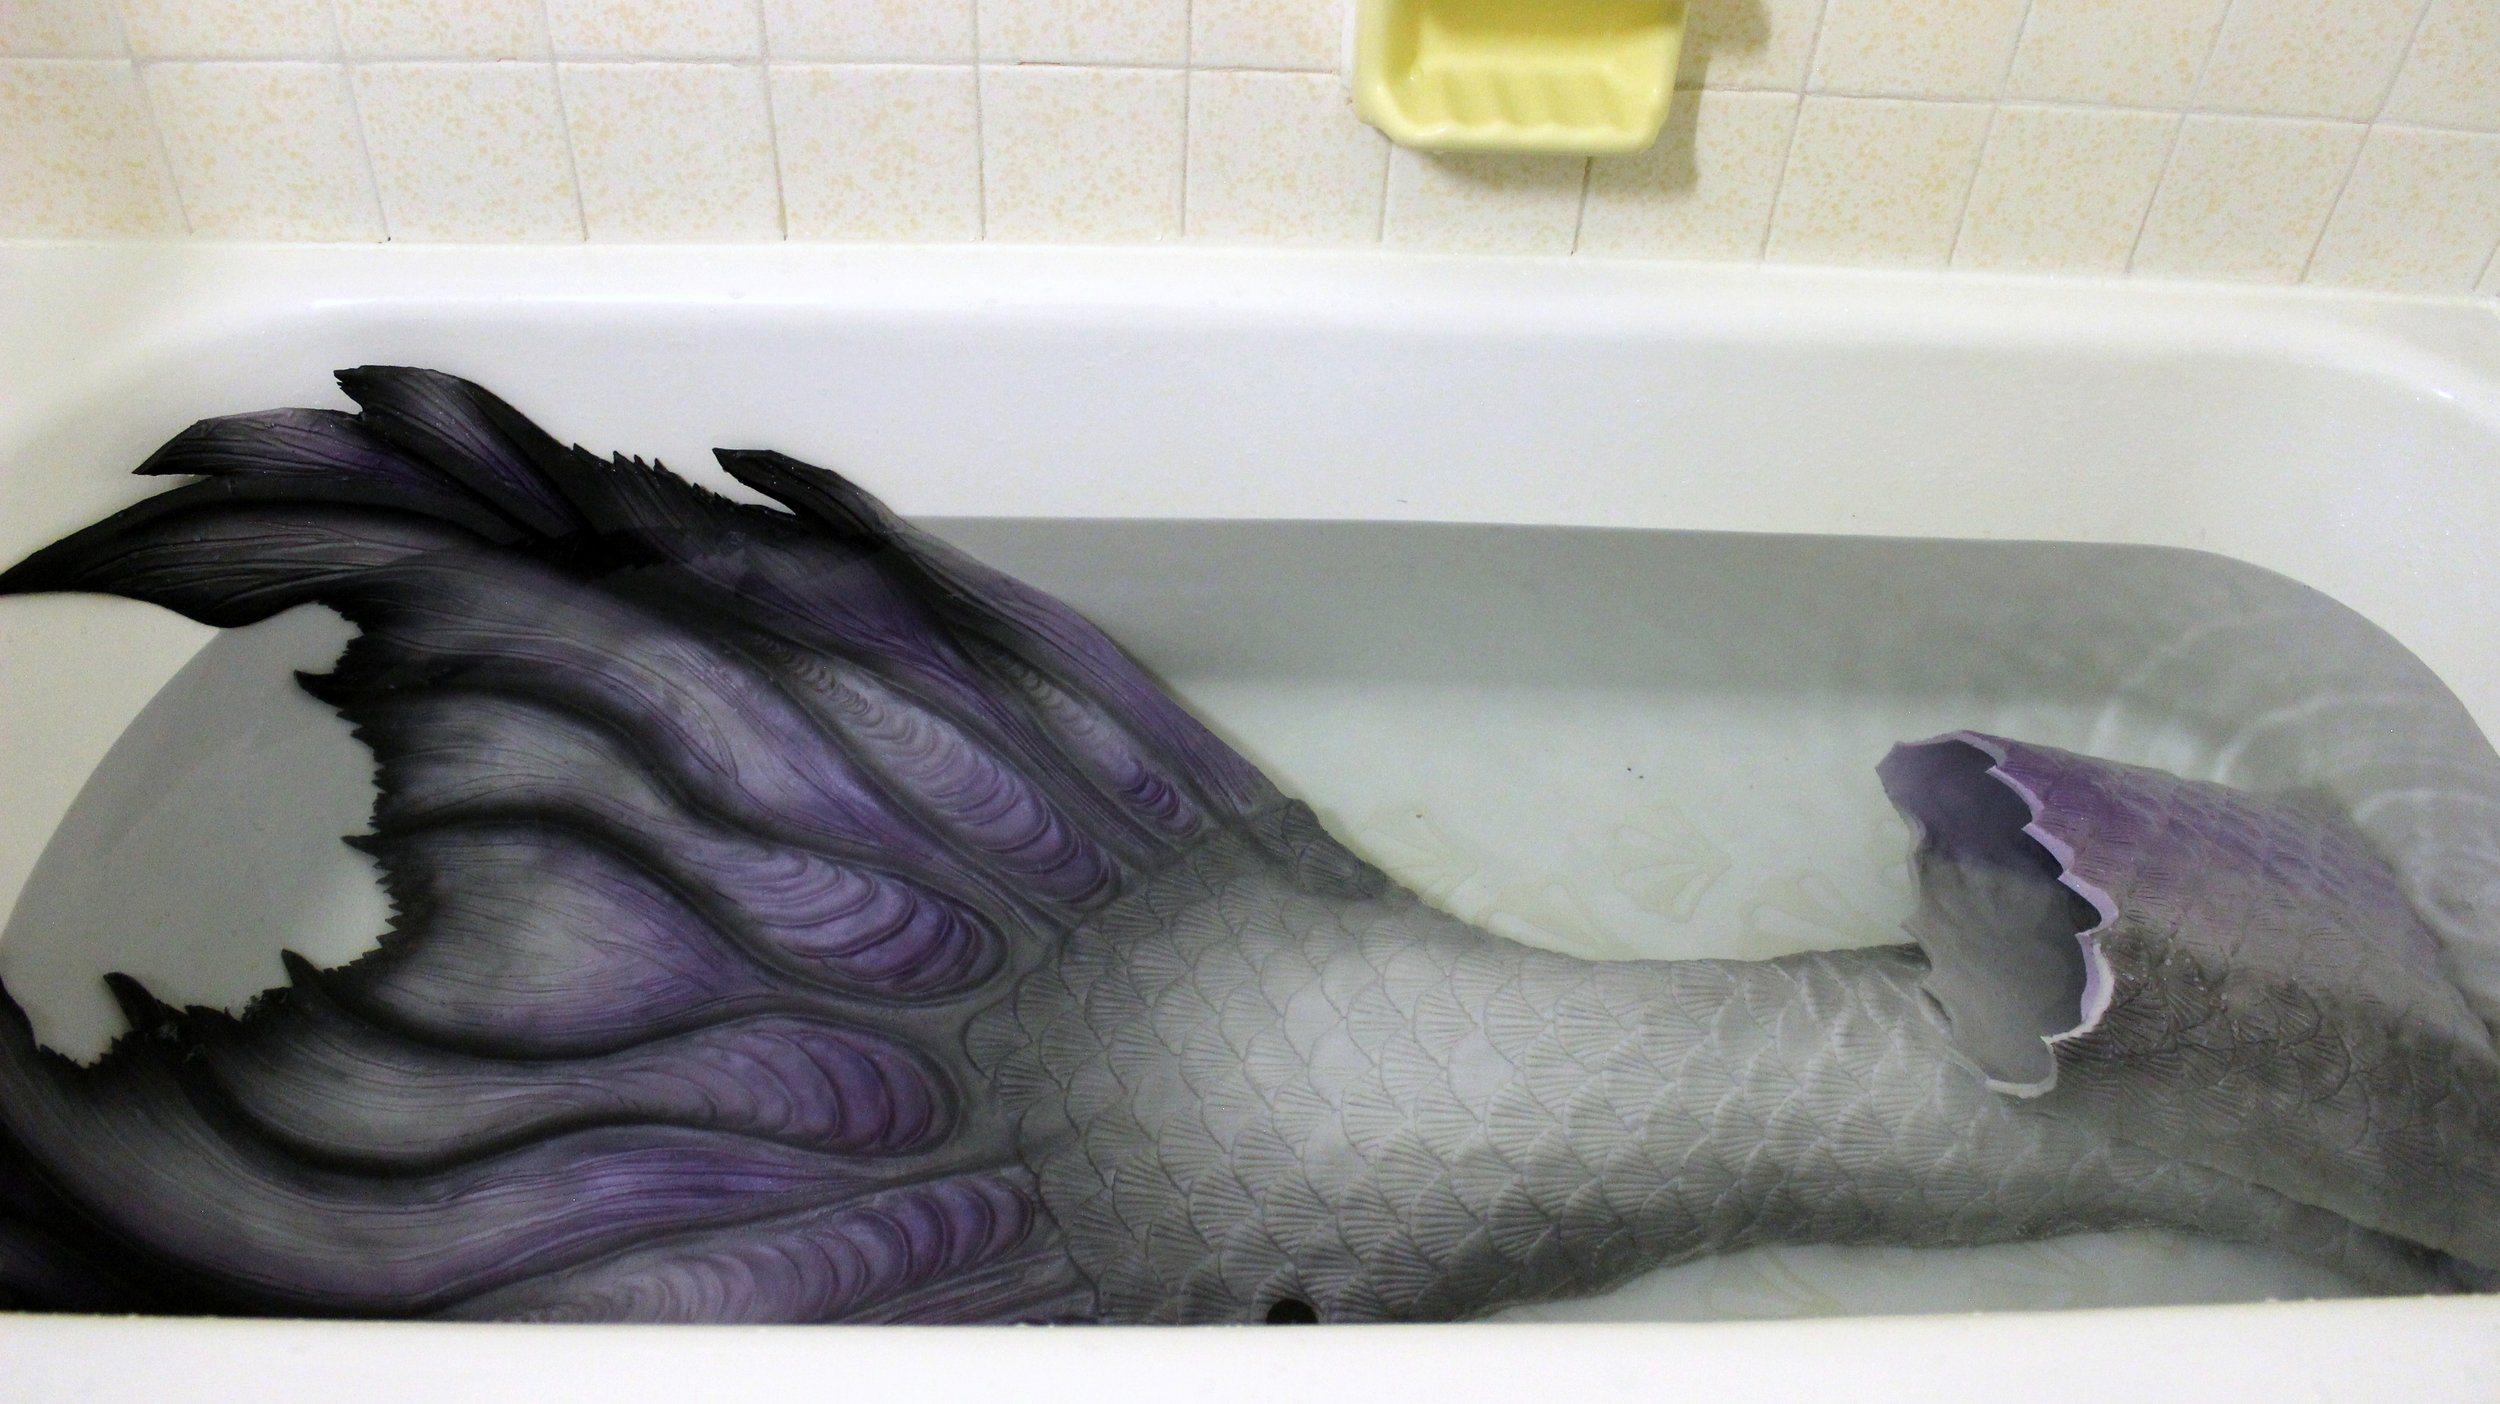 Cleaning my MerNation Silicone Mermaid Tail. Here is a picture of my hyper-realistic mermaid tail getting a bath in the bathtub! I clean my tail, Sparda, after nearly every swim and every event in order to maintain its beauty and prevent the development of mold.